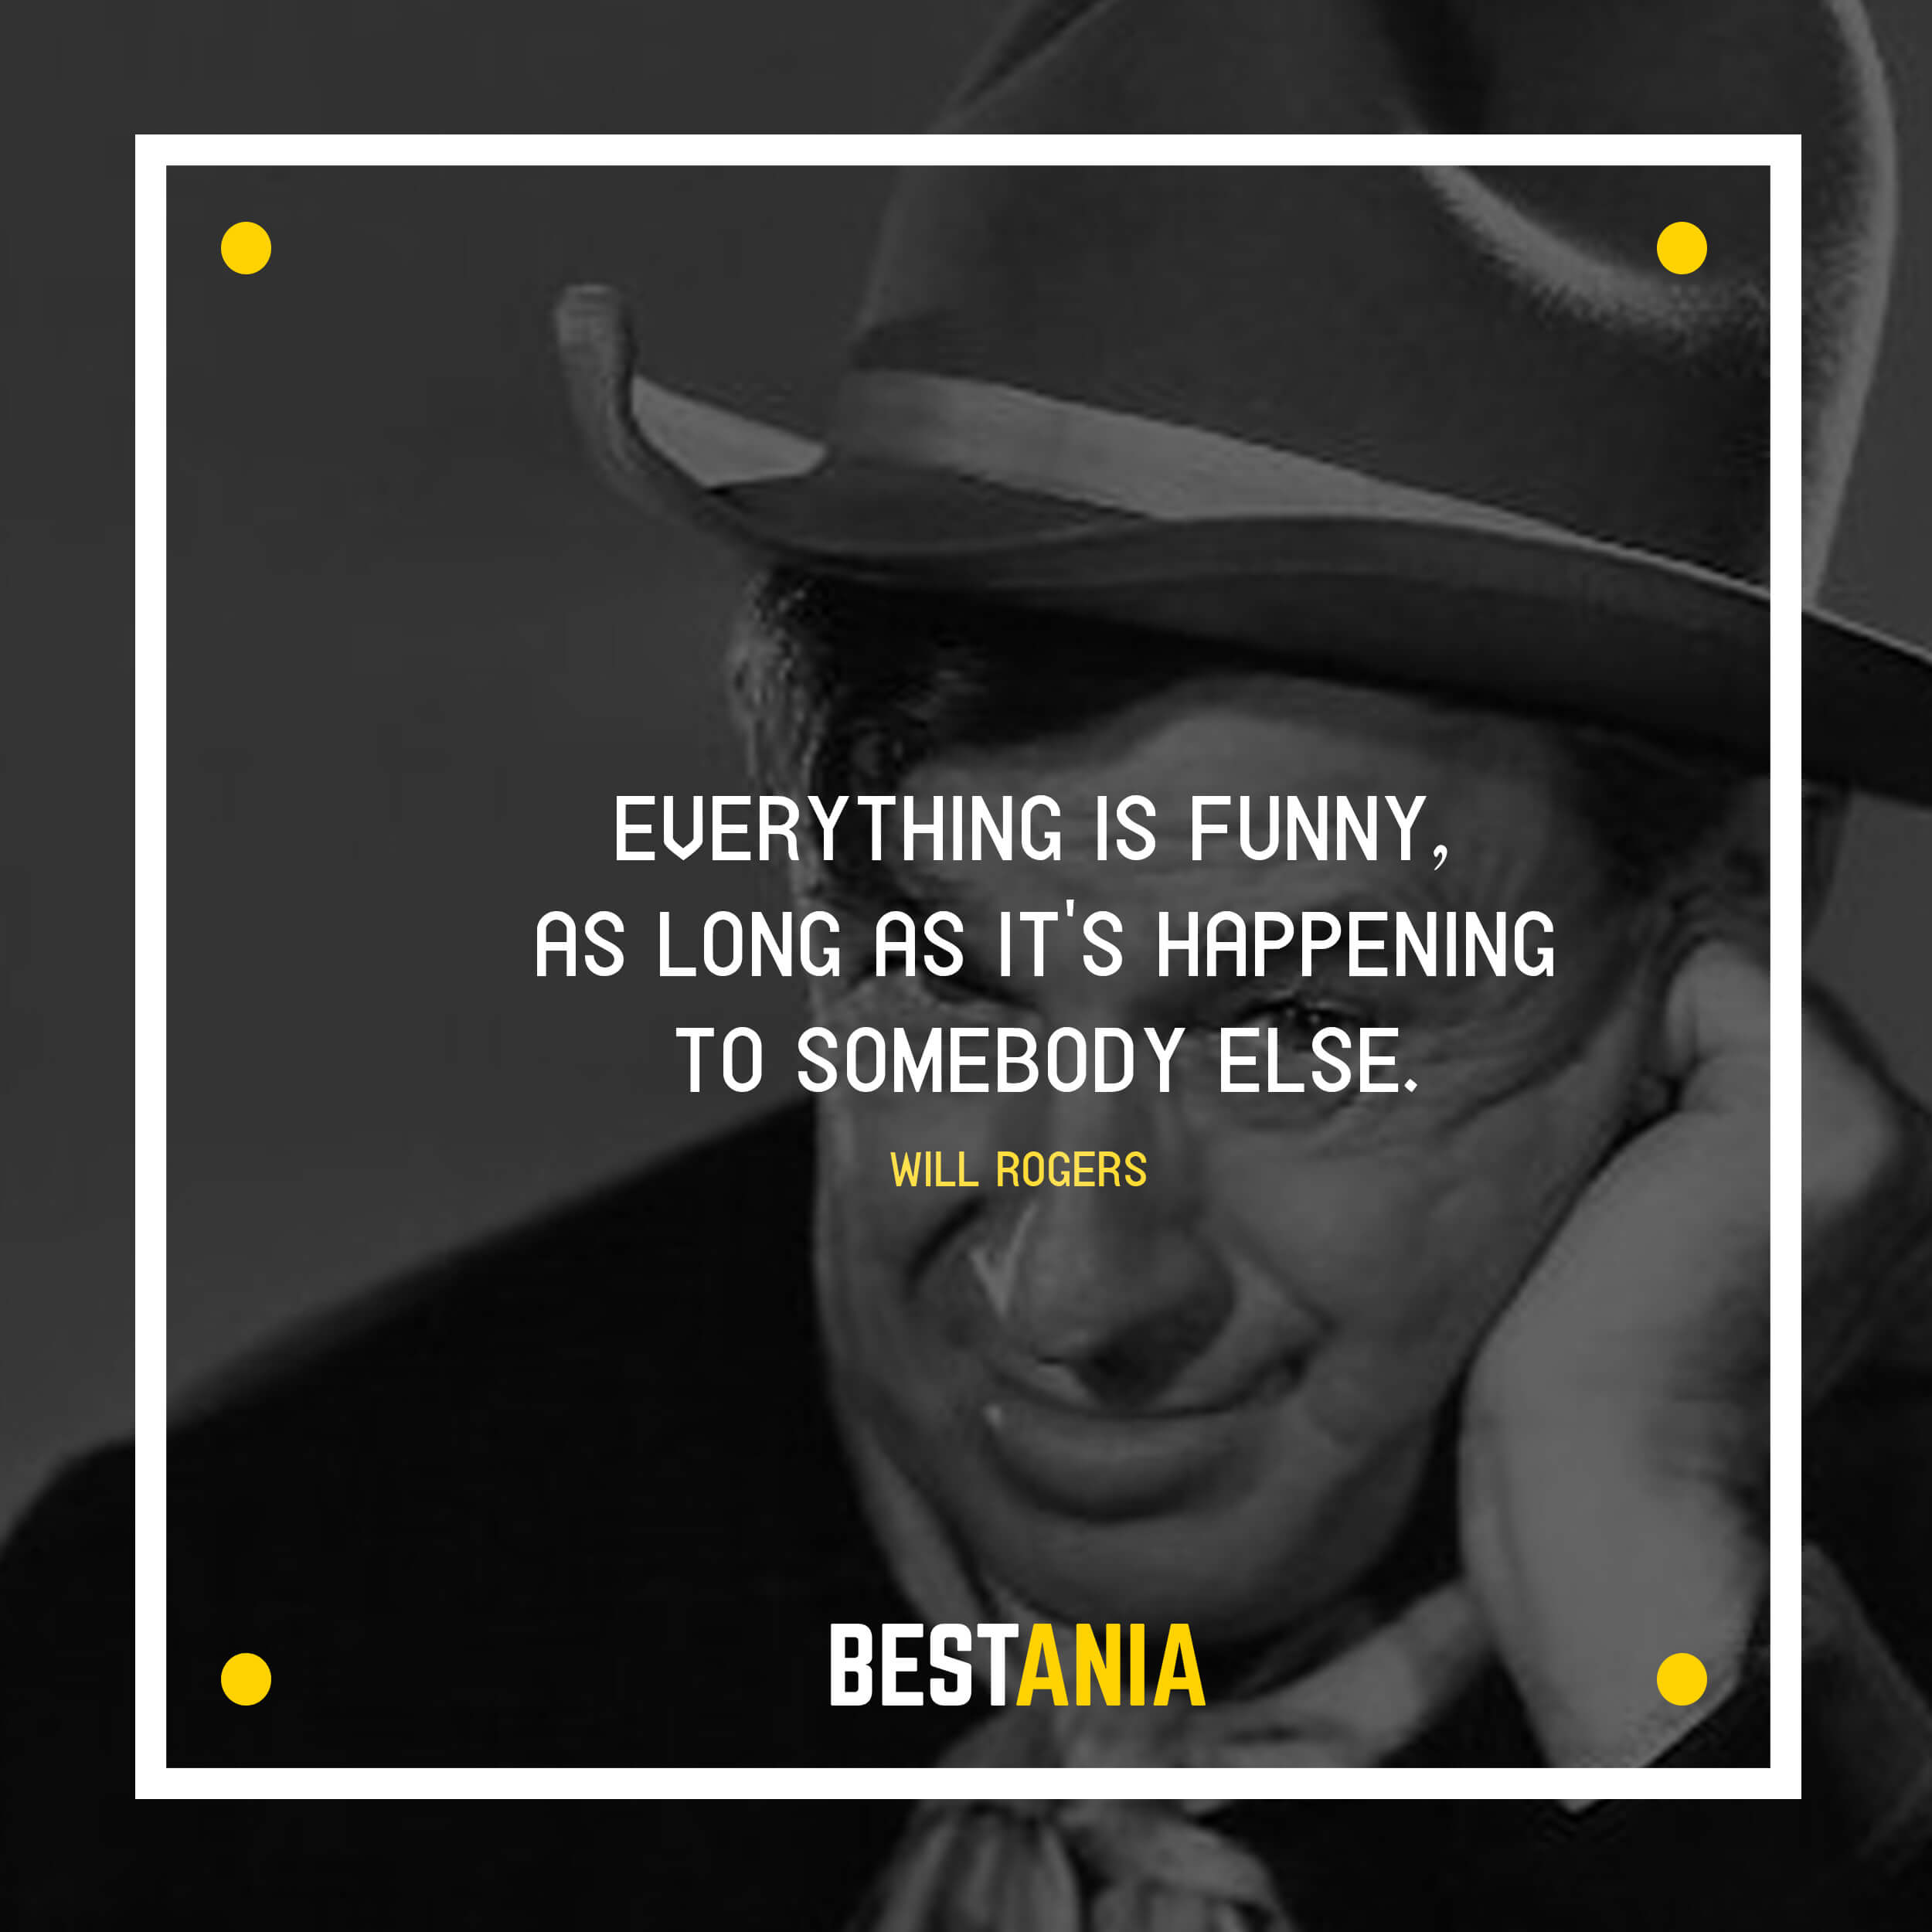 """EVERYTHING IS FUNNY, AS LONG AS IT'S HAPPENING TO SOMEBODY ELSE.""  WILL ROGERS"